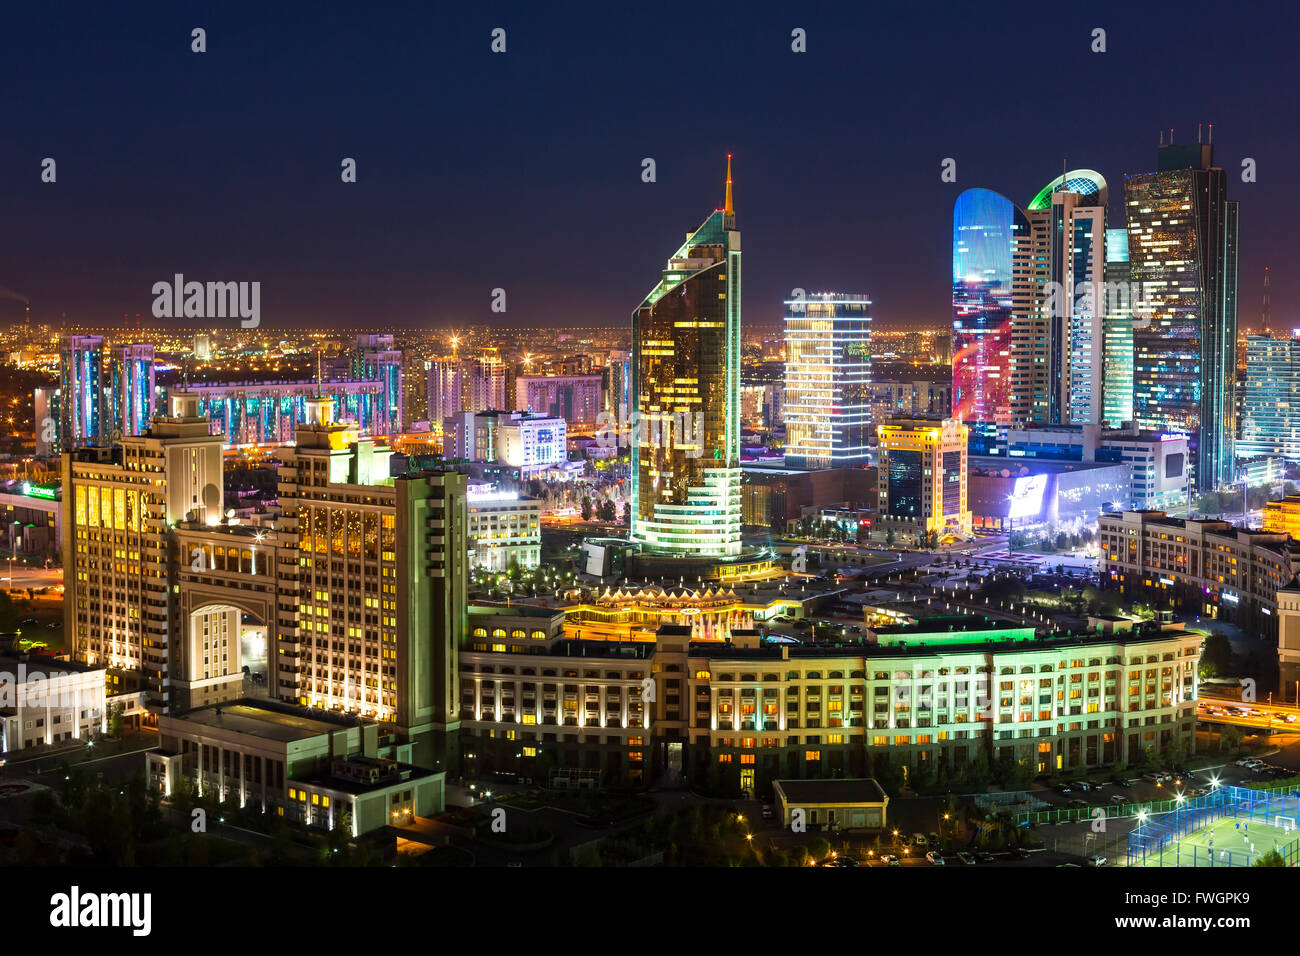 The city center and central business district at night, Astana, Kazakhstan, Central Asia - Stock Image